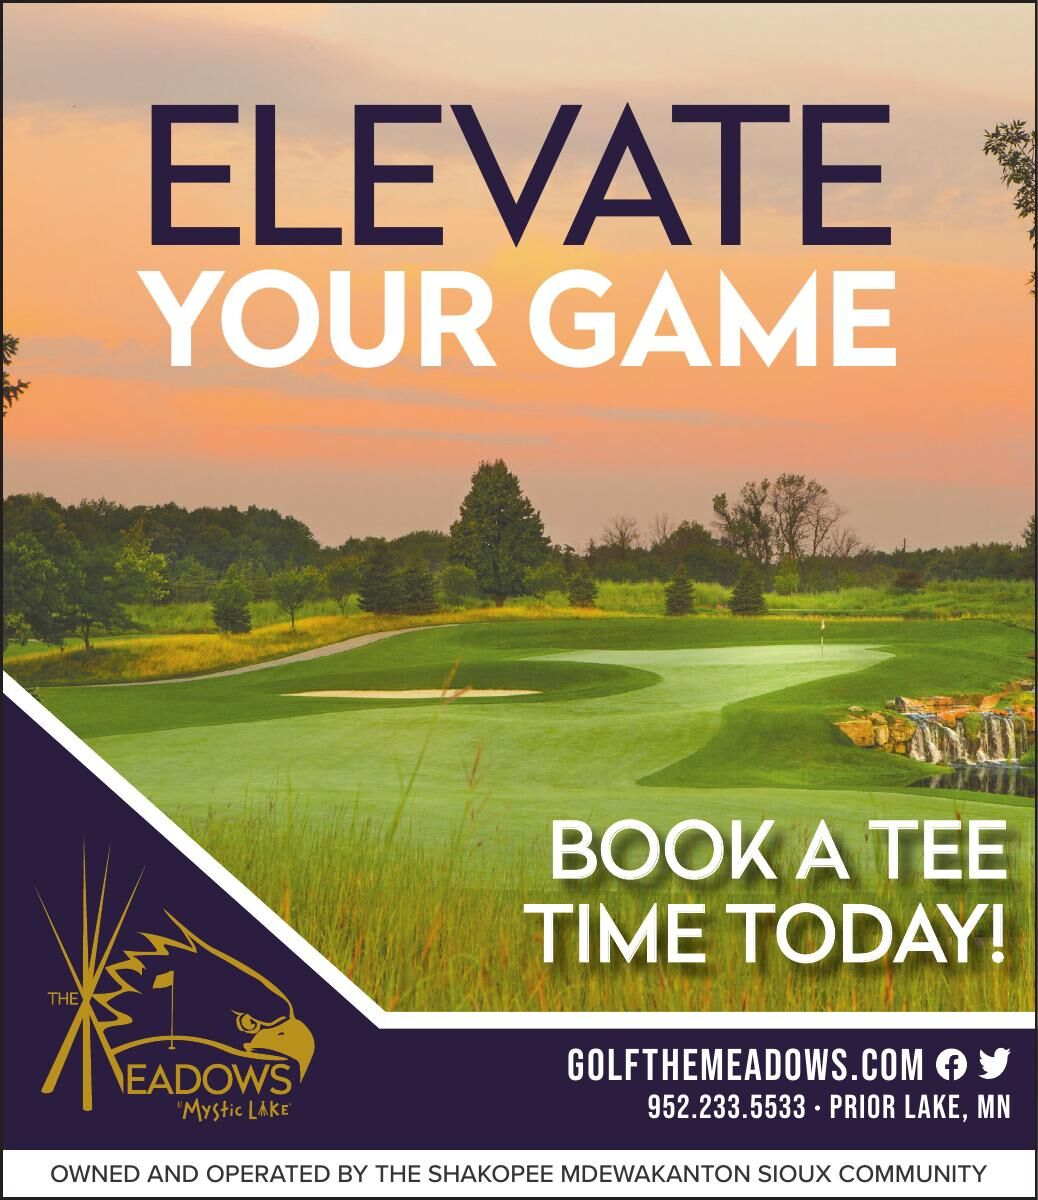 ELEVATE YOUR GAME BOOK A TEE TIME